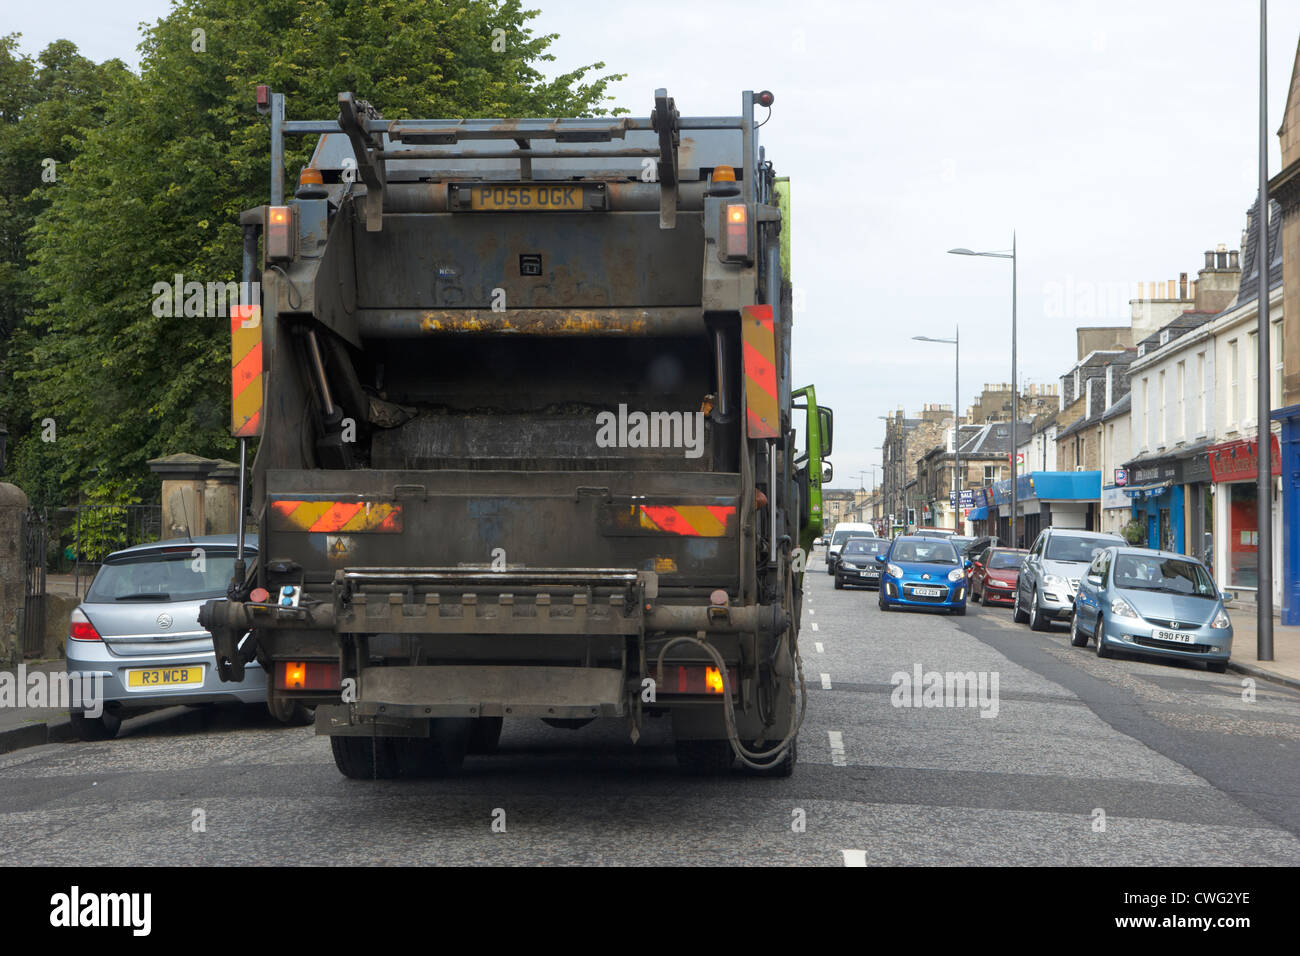 private company bin lorry double parked in the middle of the street in edinburgh, scotland, uk, united kingdom - Stock Image